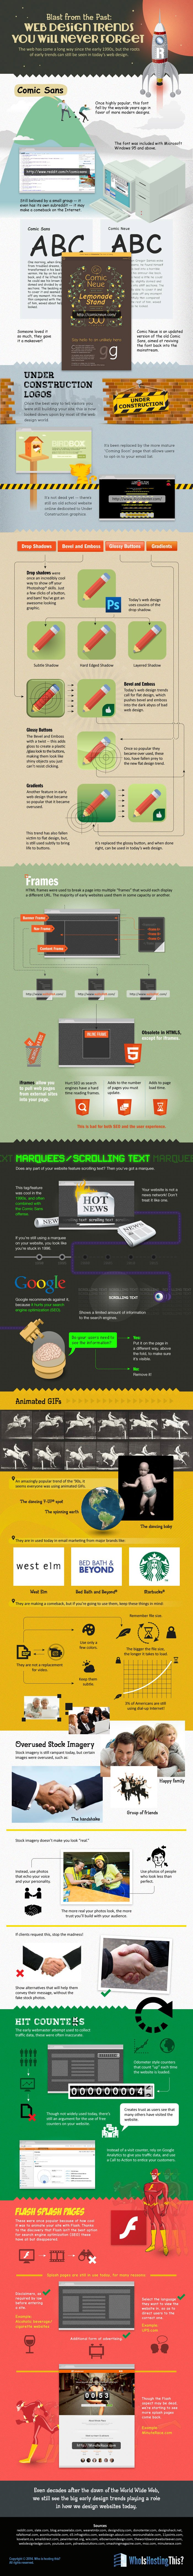 old-90s-web-design-trends-infographic-2